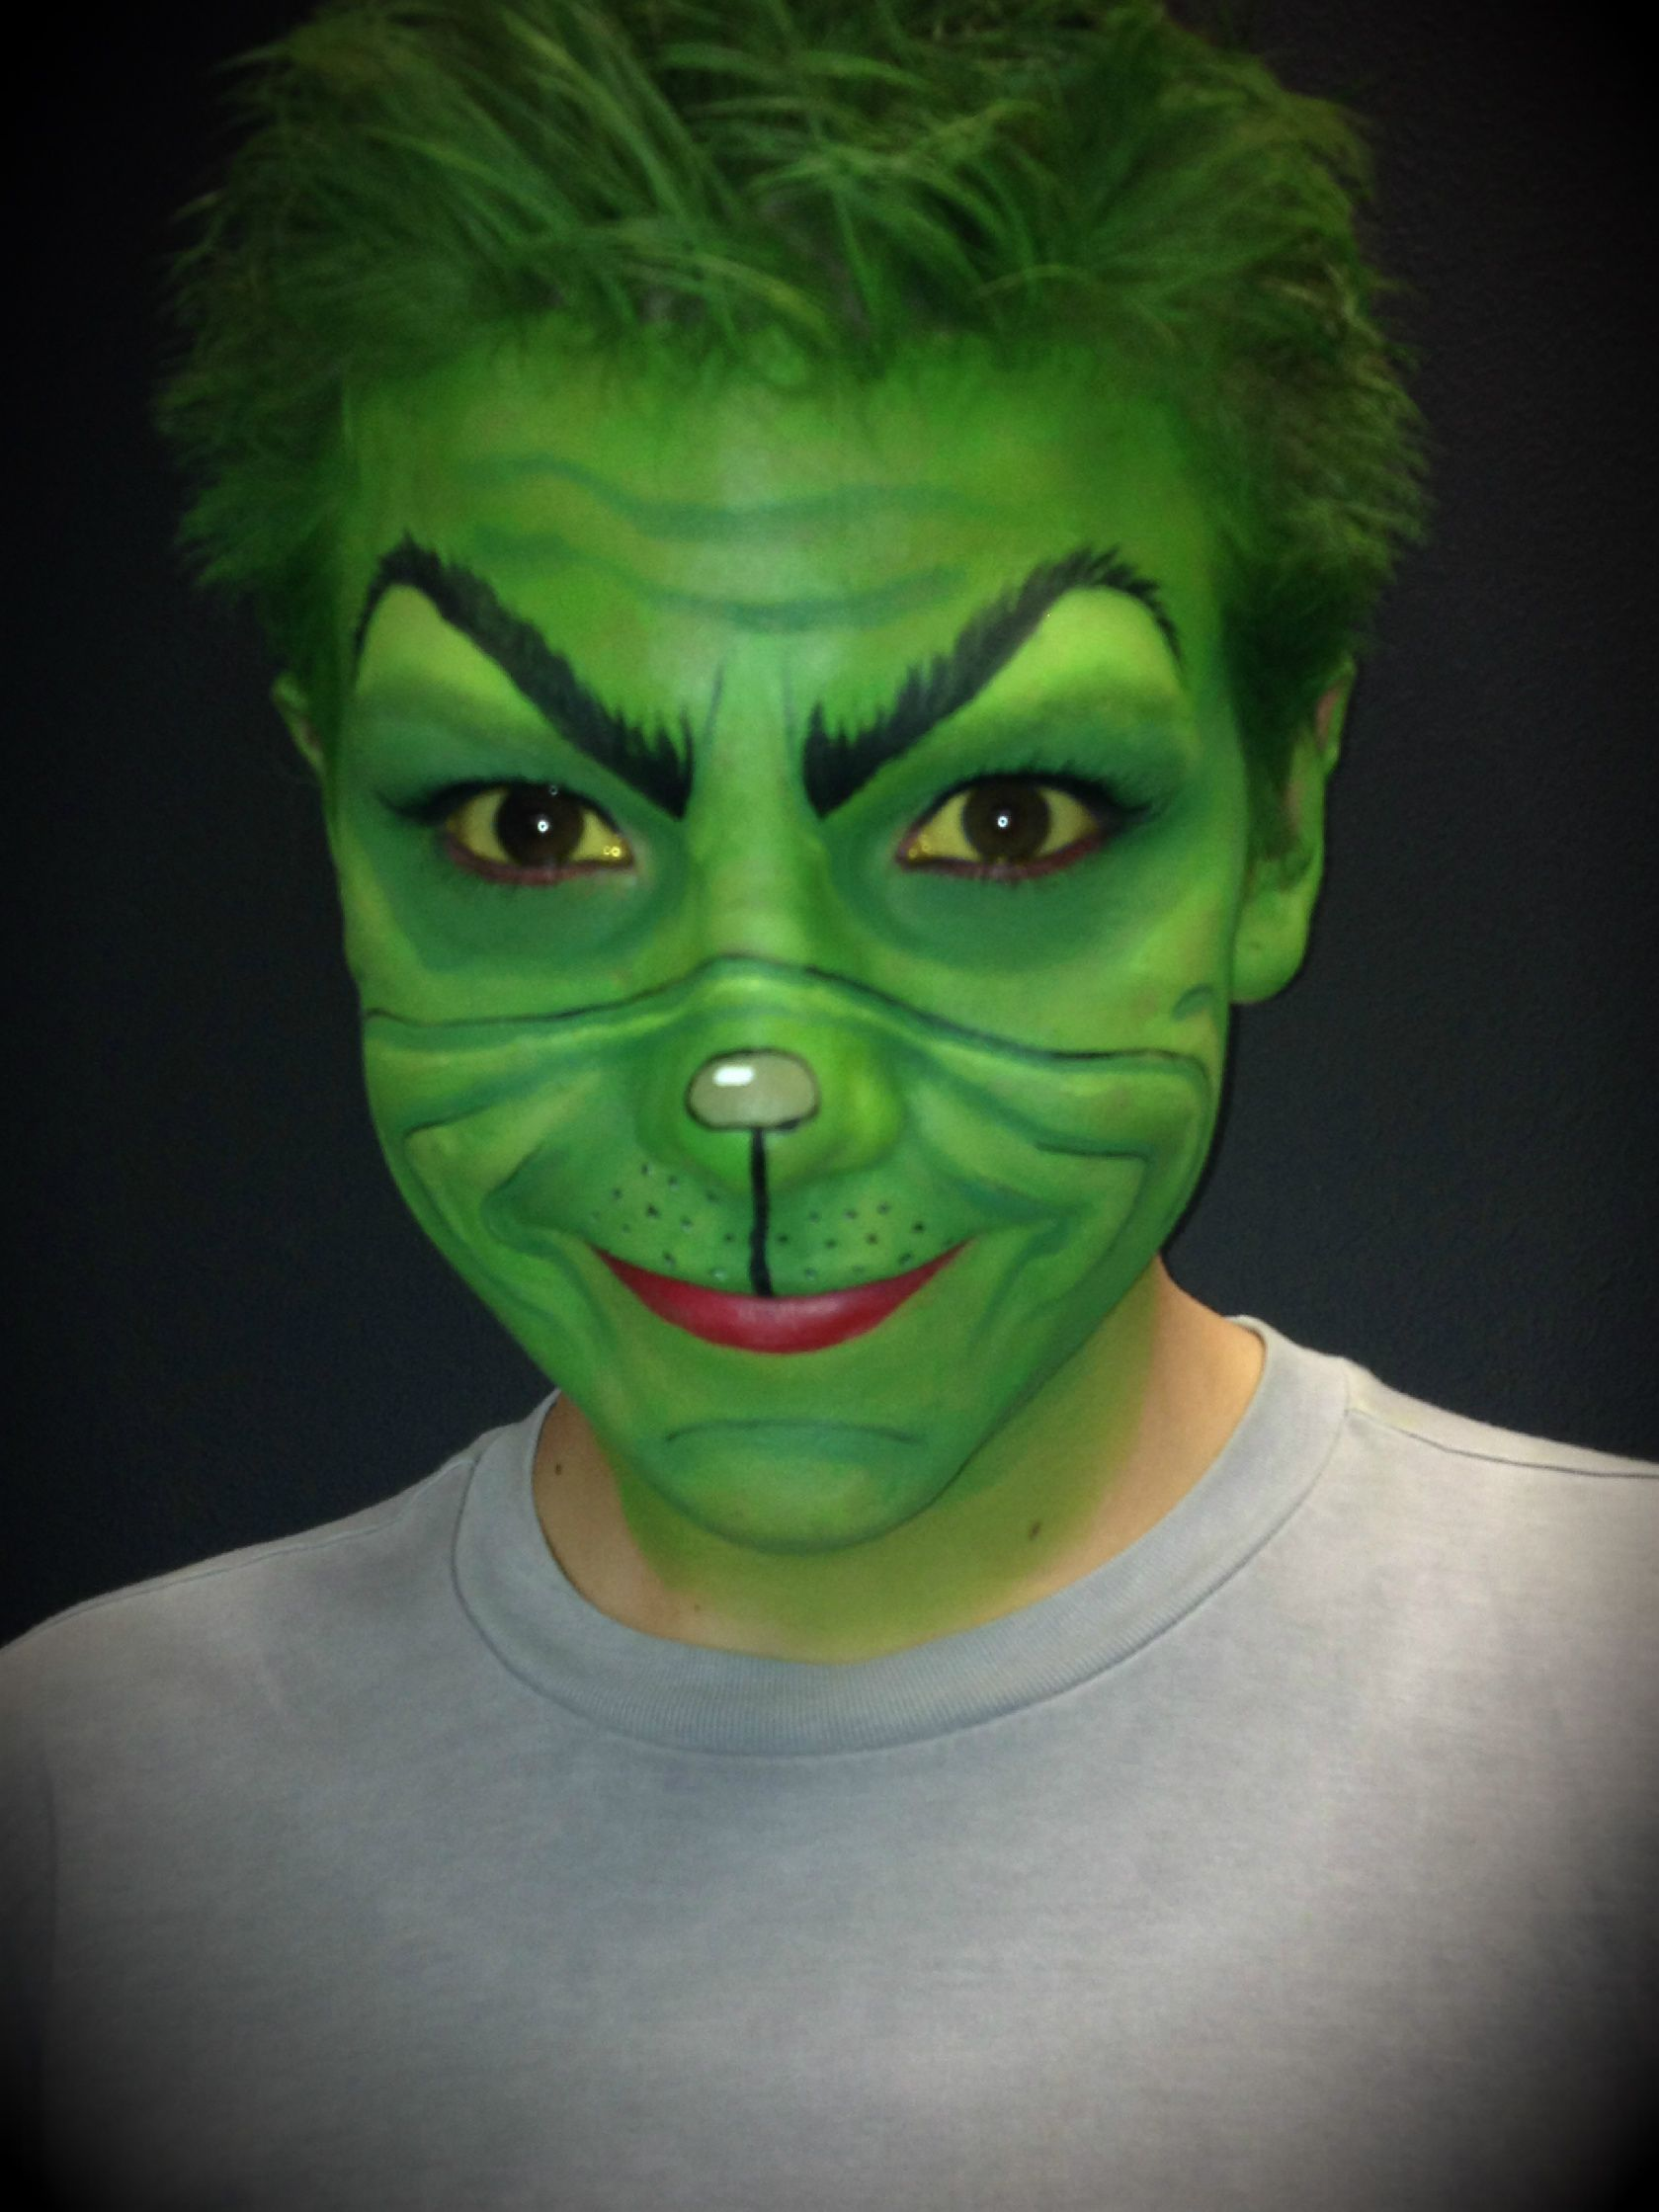 How to make your own grinch costume - The Grinch Makeup We Have Fantastic Mehron Paradise Makeup And Bennye Cream